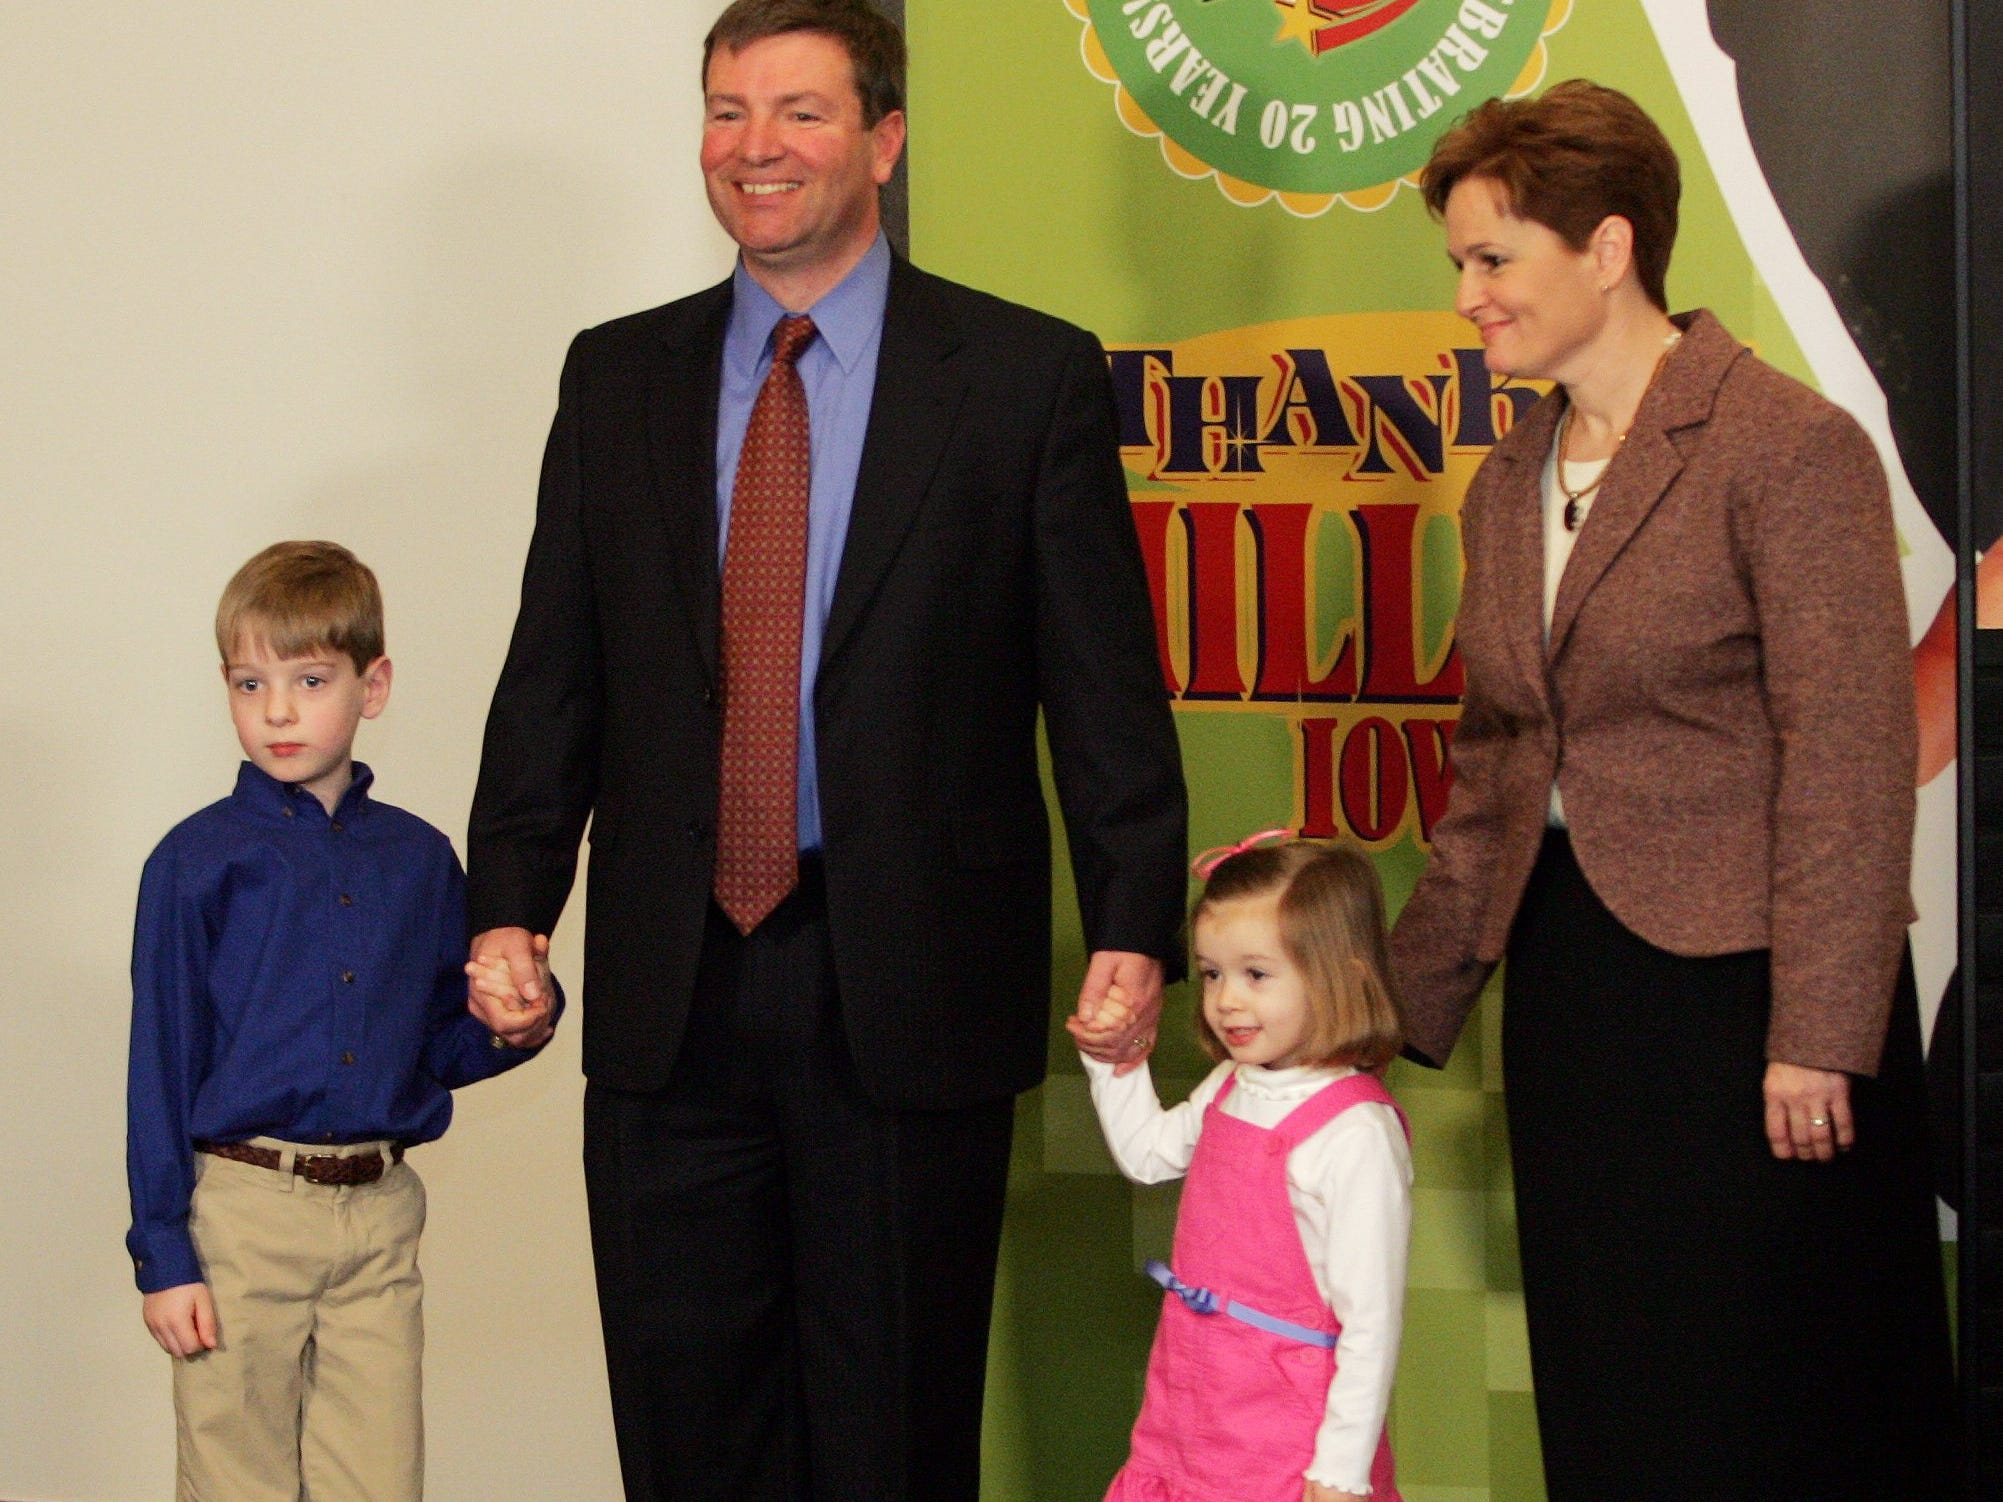 """January 2006: Des Moines' Hugh Hawkins won a Powerball jackpot prize worth $113.2 million. """"We are very, very fortunate,"""" said Hawkins, who appeared at a news conference with his wife, Cindy, their 3-year-old daughter Katie and 6-year-old son Alex. Hawkins said he had been on a business trip the week of the drawing and learned only days later that it was a winner. He had stopped at the Dahl's supermarket where he purchased it and heard people talking about a winner. He pulled the ticket from his pocket and asked the clerk to check it. """"Well, it was a match, and I haven't slept in two weeks,"""" Hawkins said."""